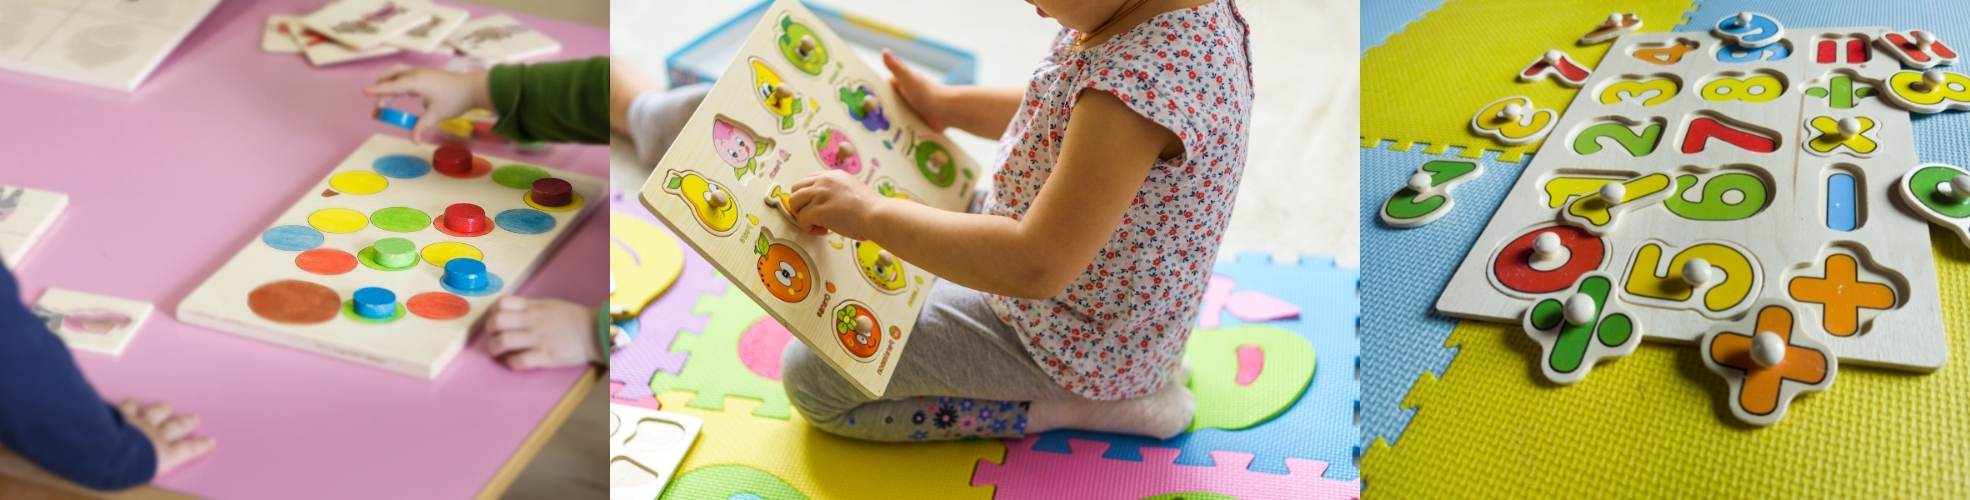 Browse our range of wholesale educational toys and puzzles for children.